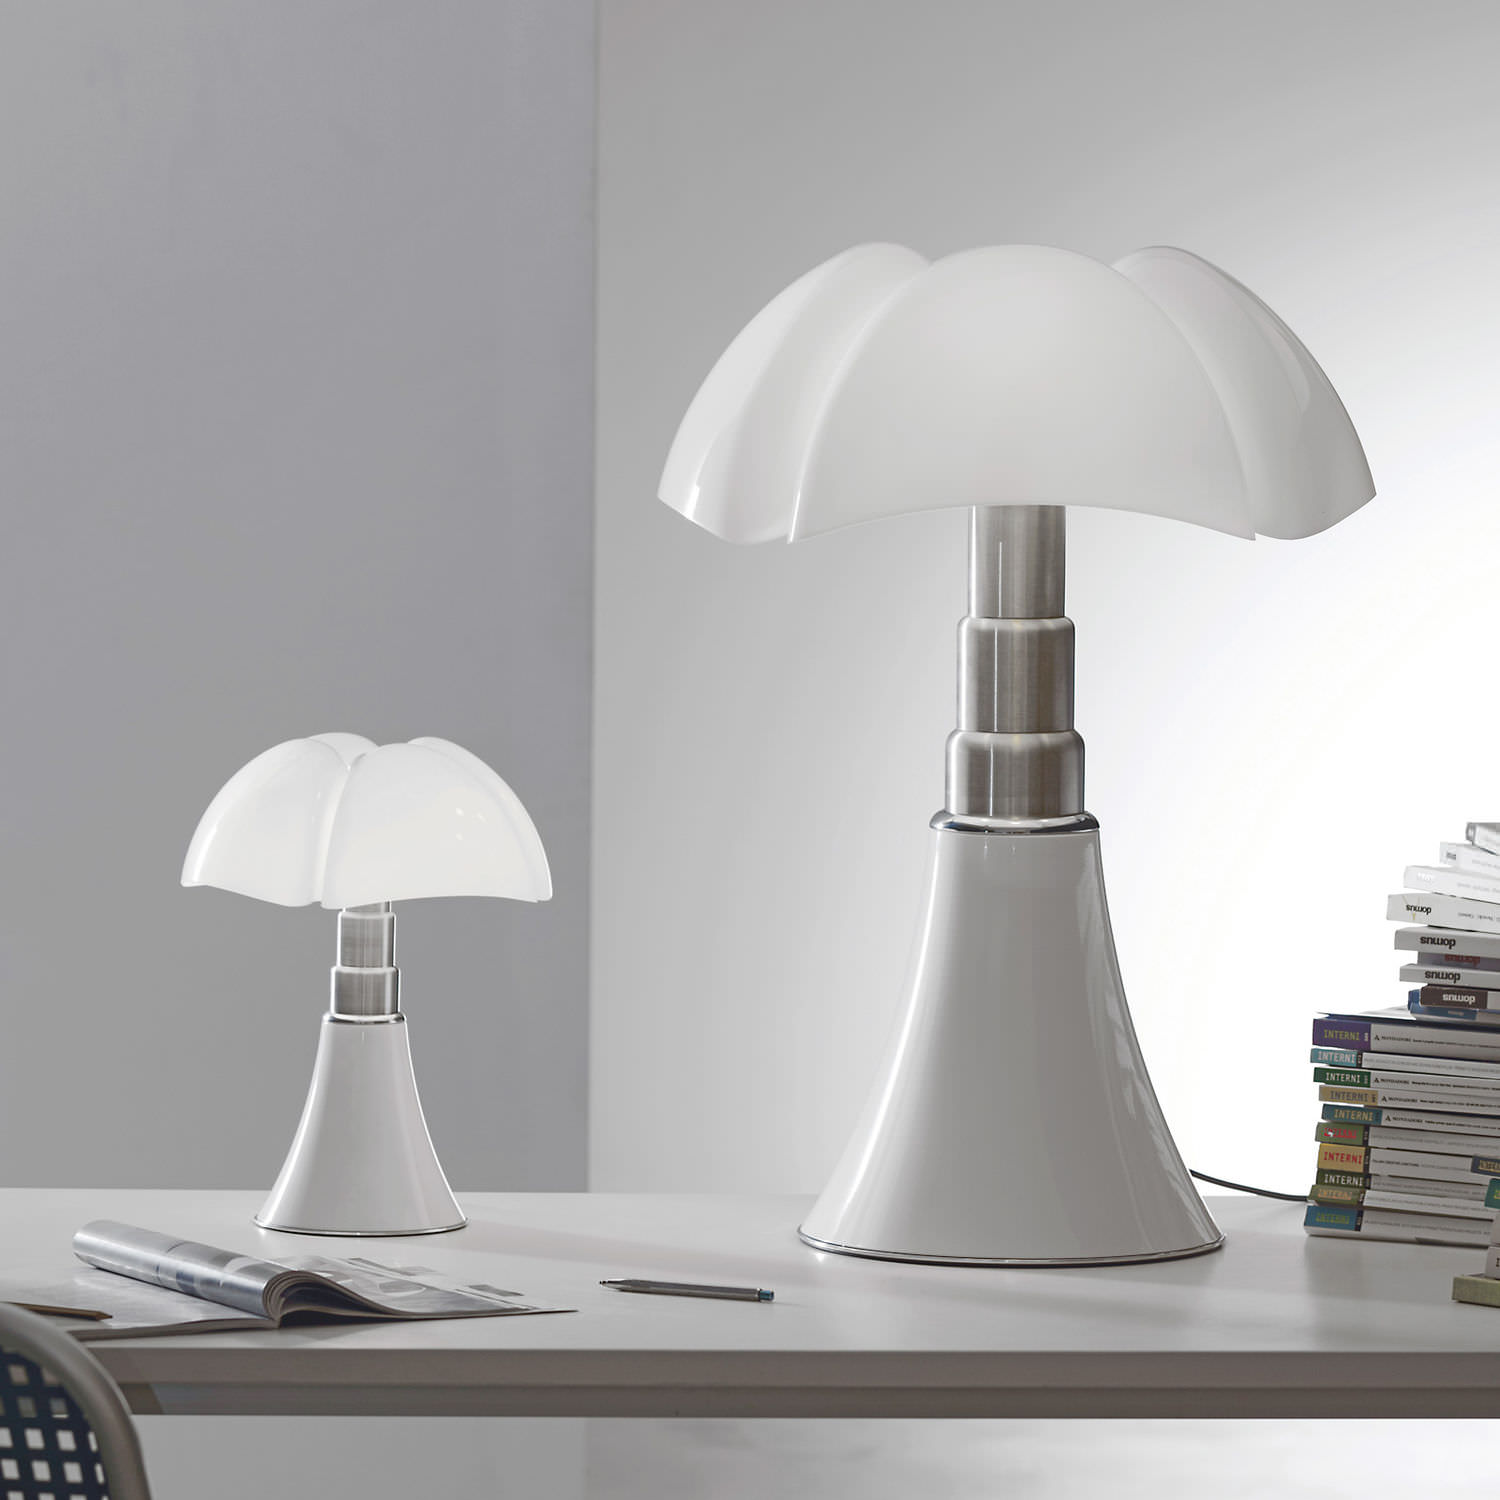 Fabuleux Table lamp / original design / stainless steel / methacrylate  IH32